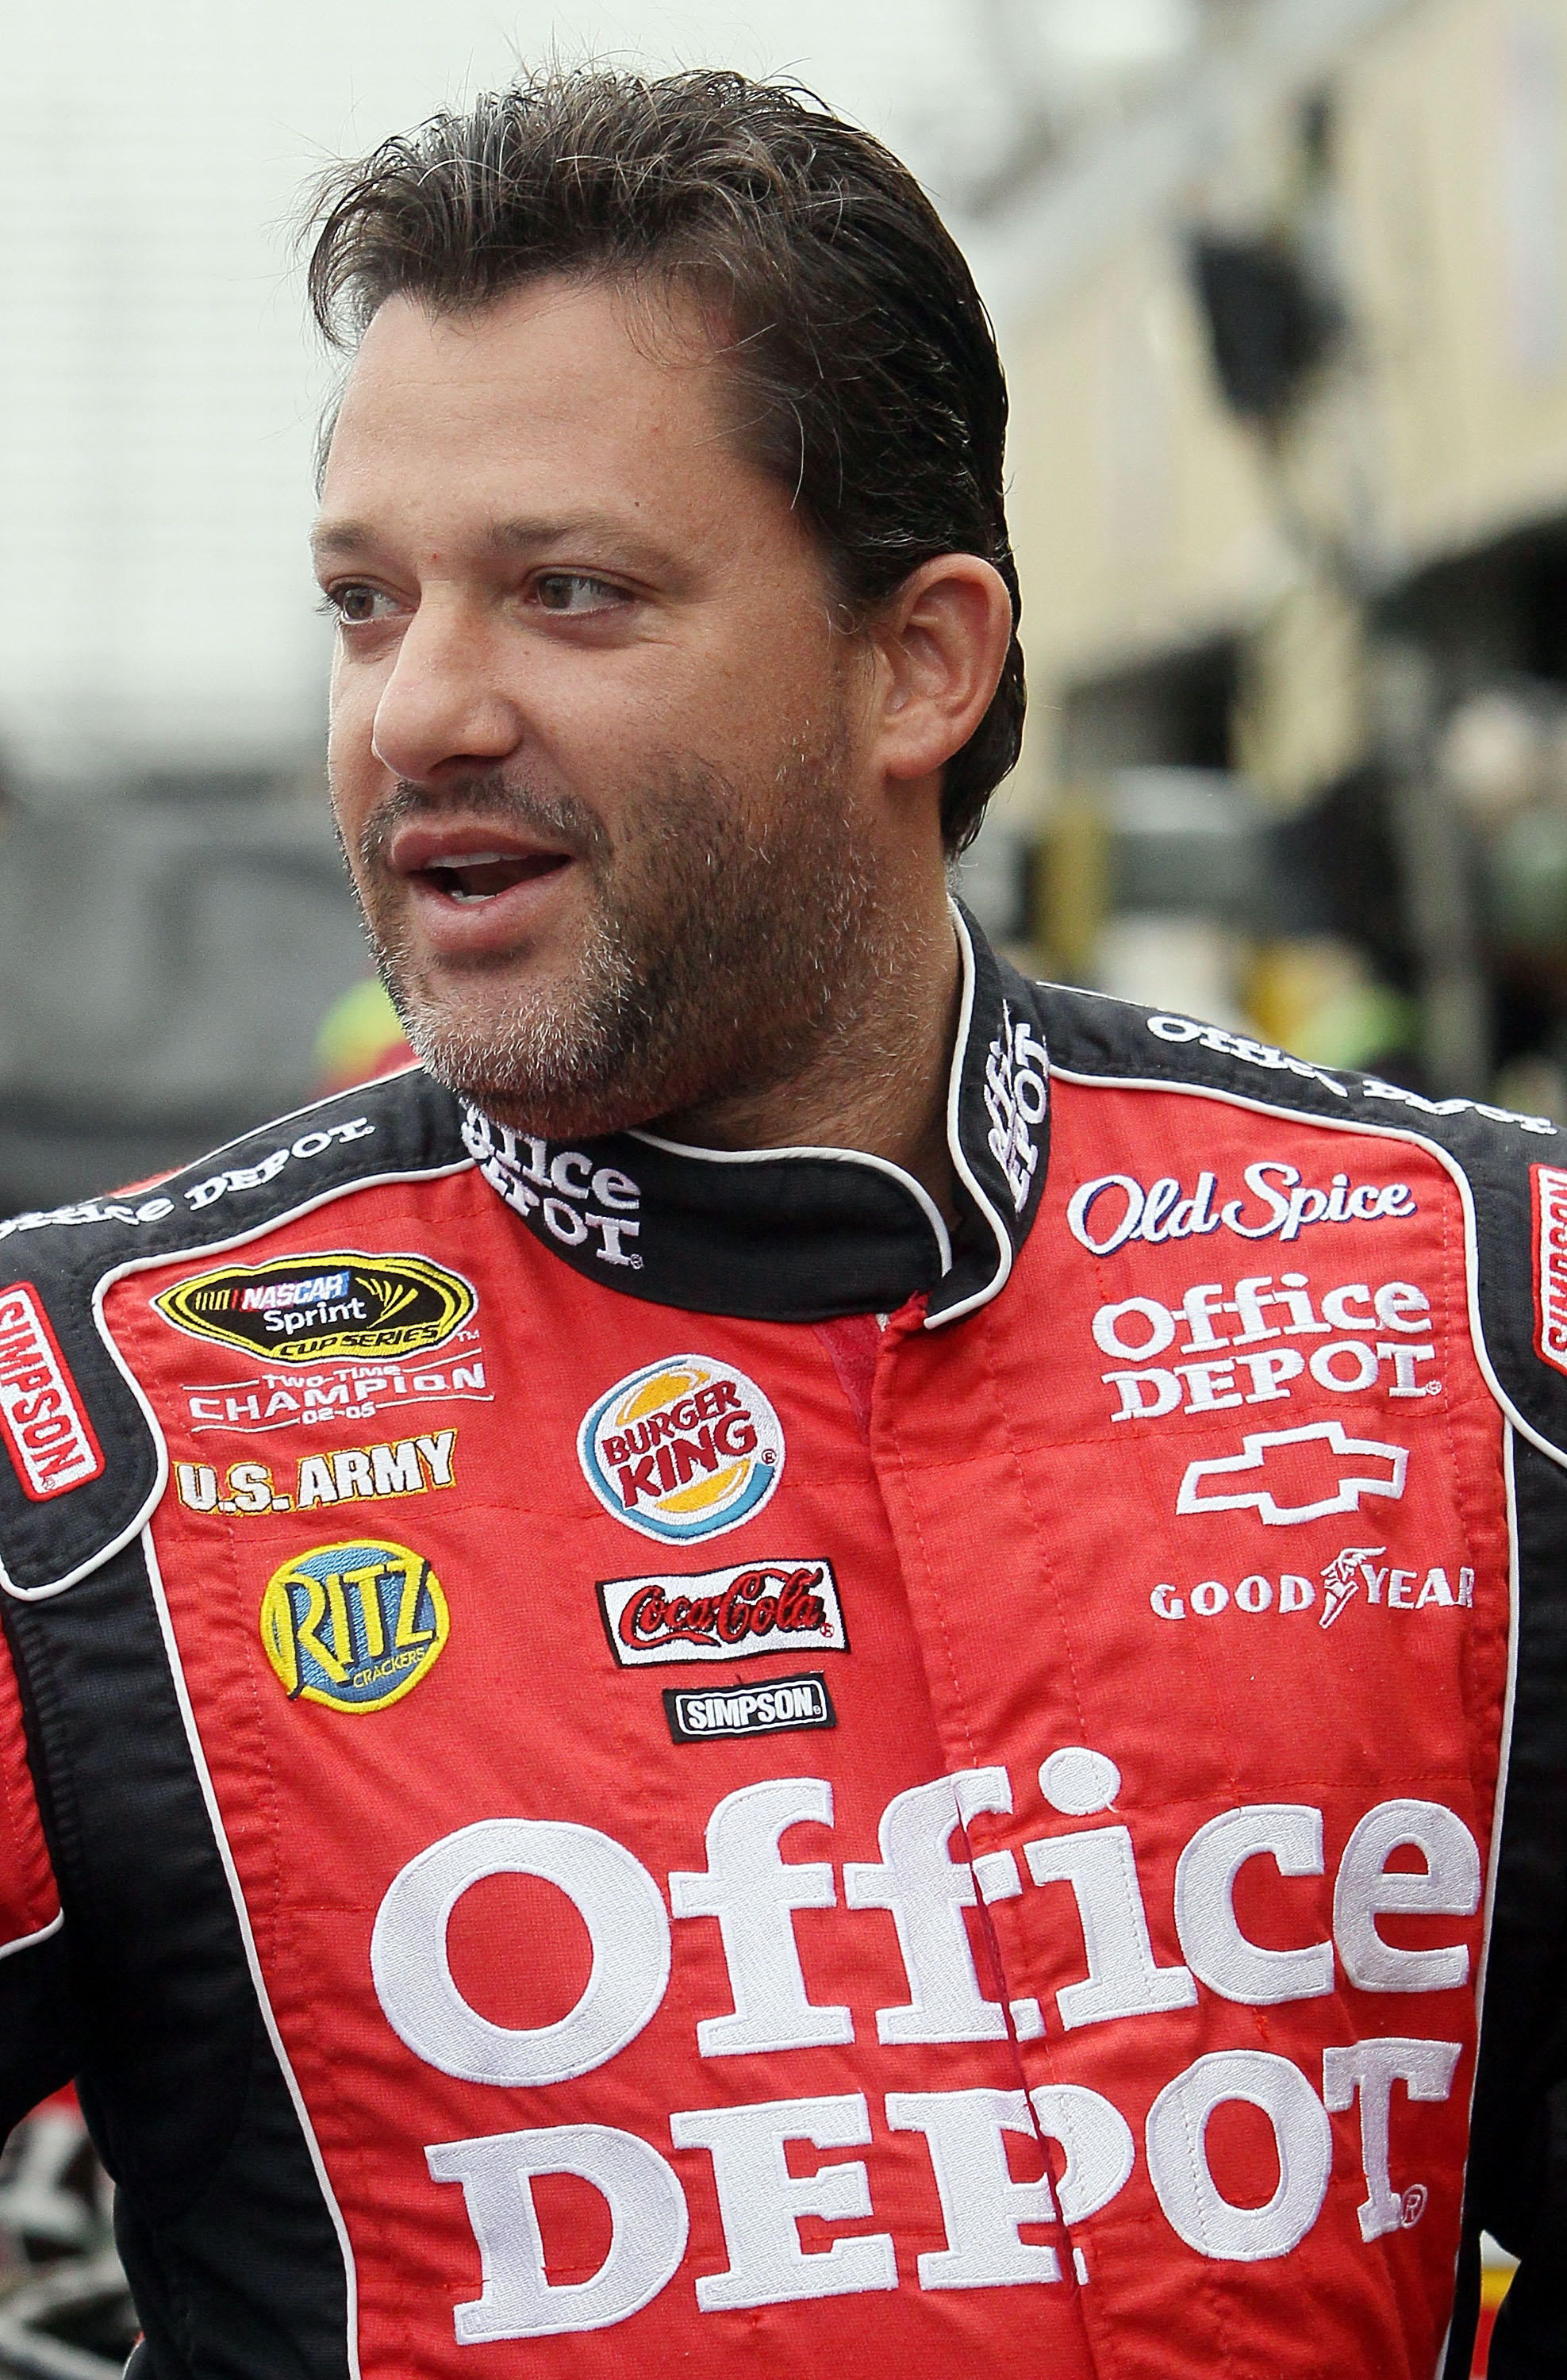 LOUDON, NH - SEPTEMBER 17:  Tony Stewart, driver of the #14 Office Depot/Old Spice Chevrolet, looks on during practice for the NASCAR Sprint Cup Series Sylvania 300 at New Hampshire Motor Speedway on September 17, 2010 in Loudon, New Hampshire.  (Photo by